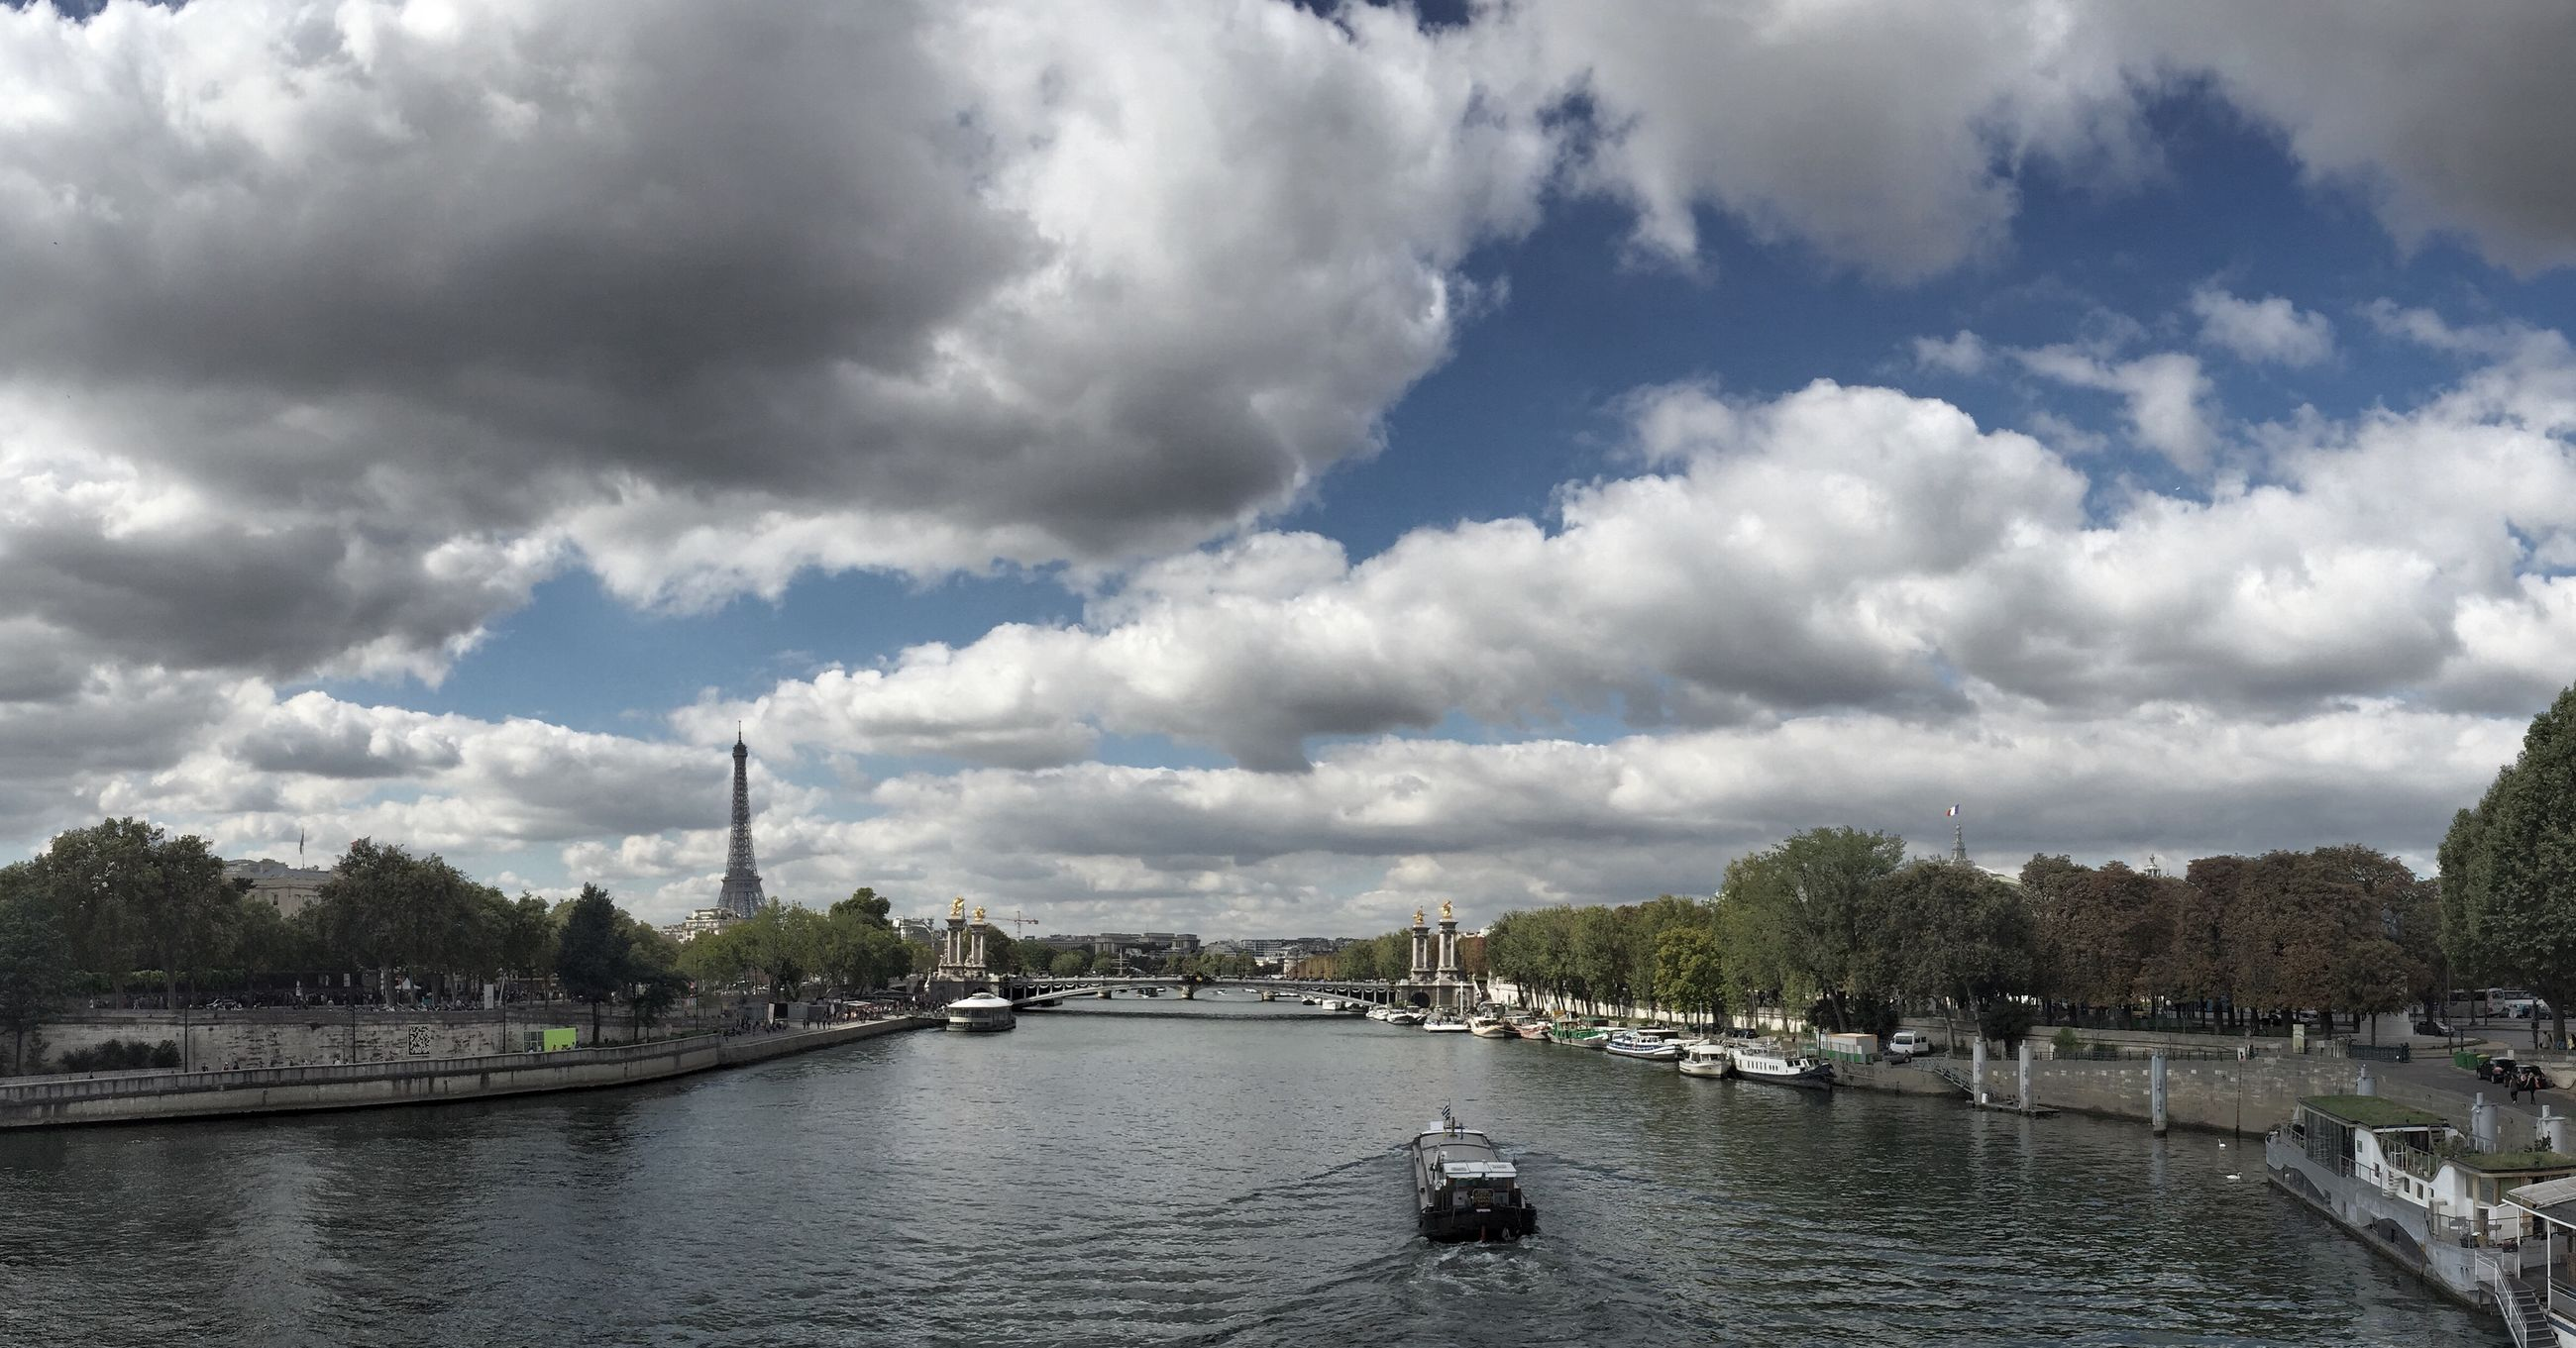 water, sky, cloud - sky, nautical vessel, cloudy, built structure, transportation, architecture, river, building exterior, waterfront, mode of transport, tree, boat, cloud, moored, harbor, nature, day, city